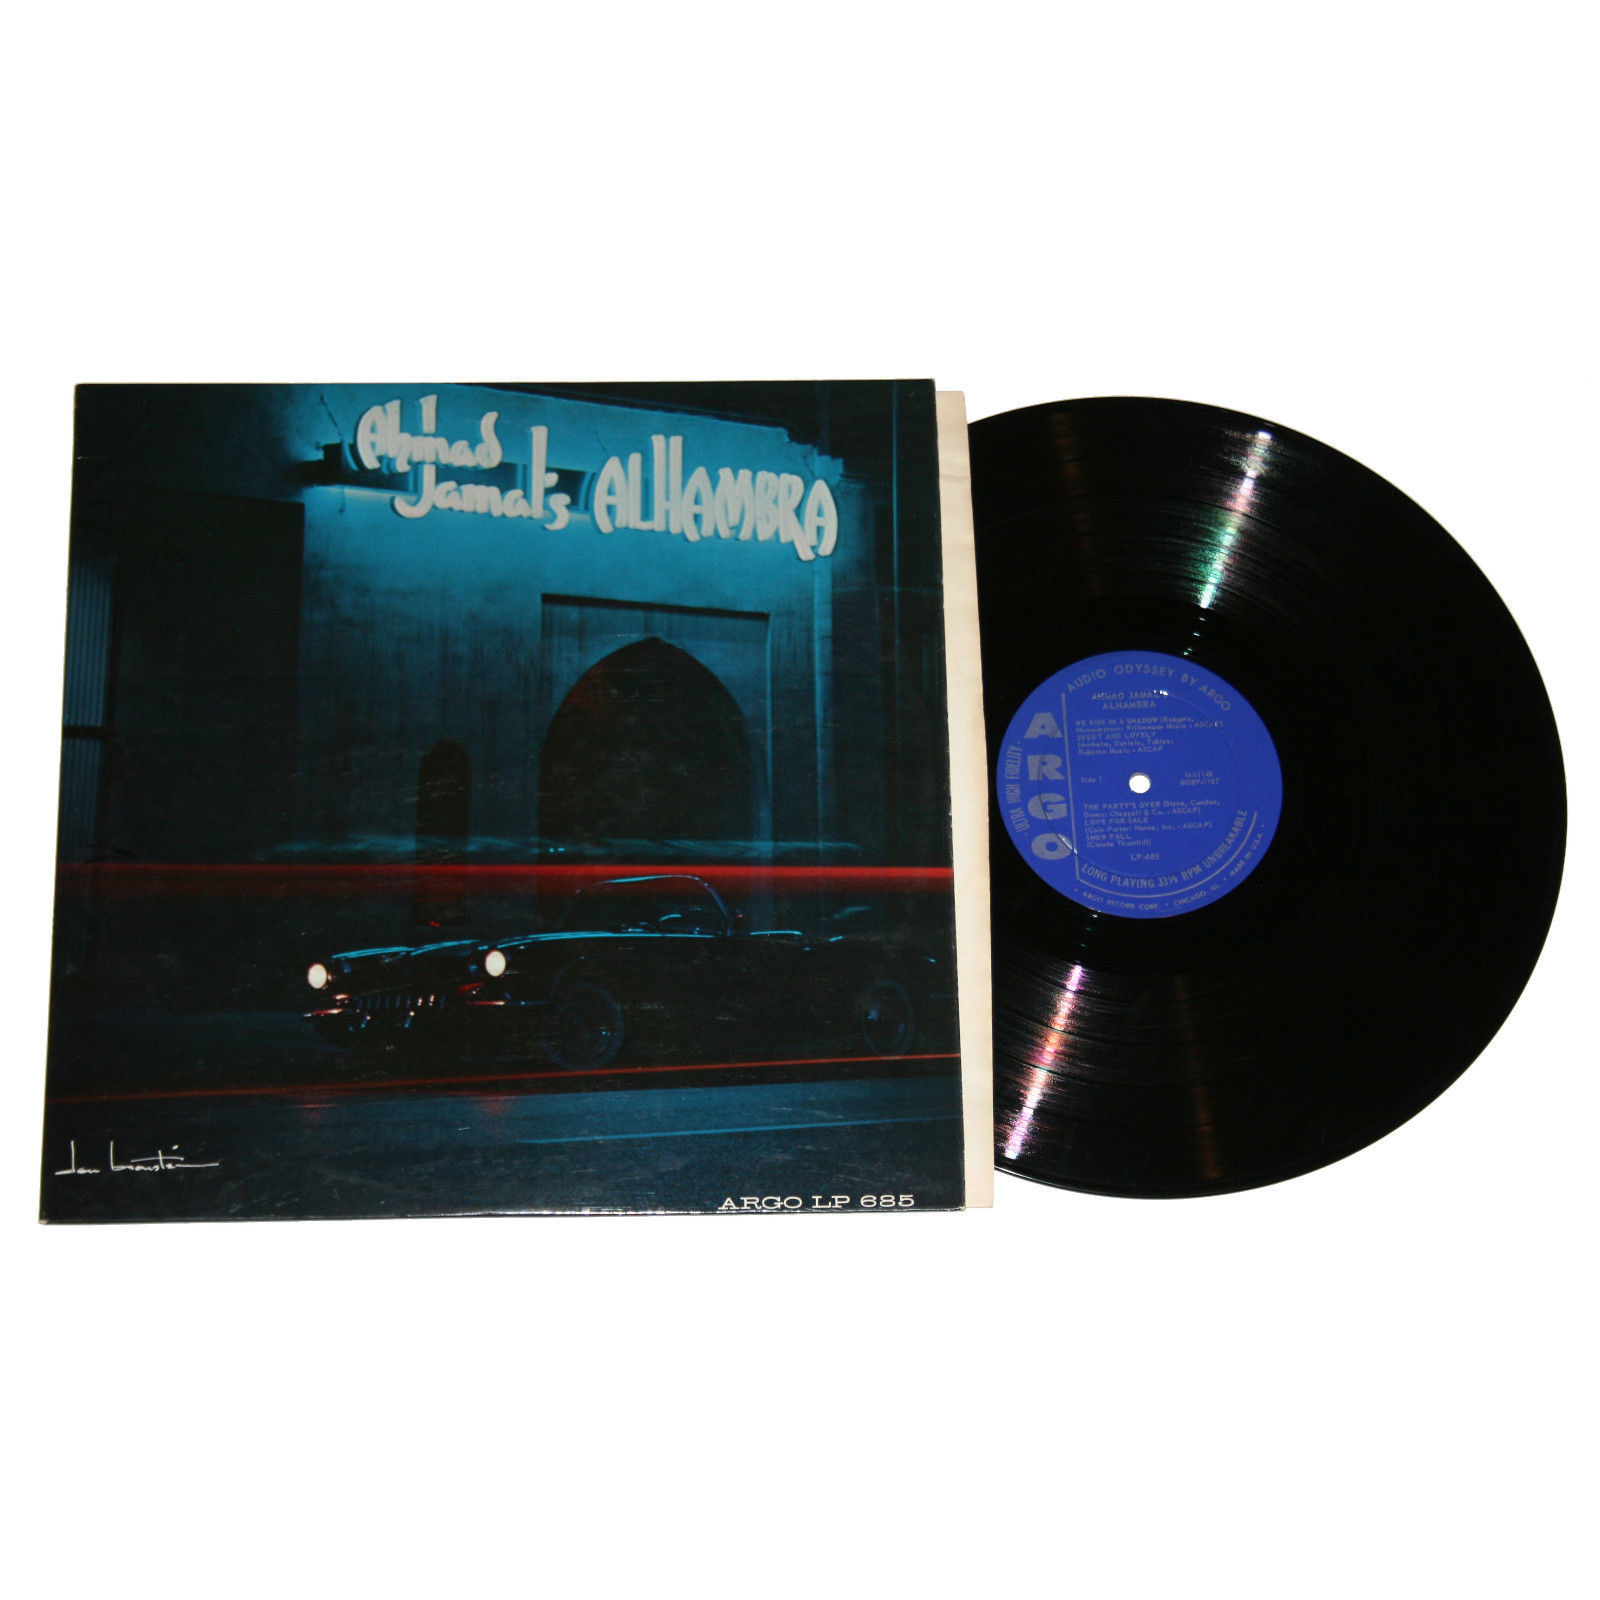 Alhambra is a live album featuring performances recorded at Ahmad Jamal's own club in Chicago in 1961.